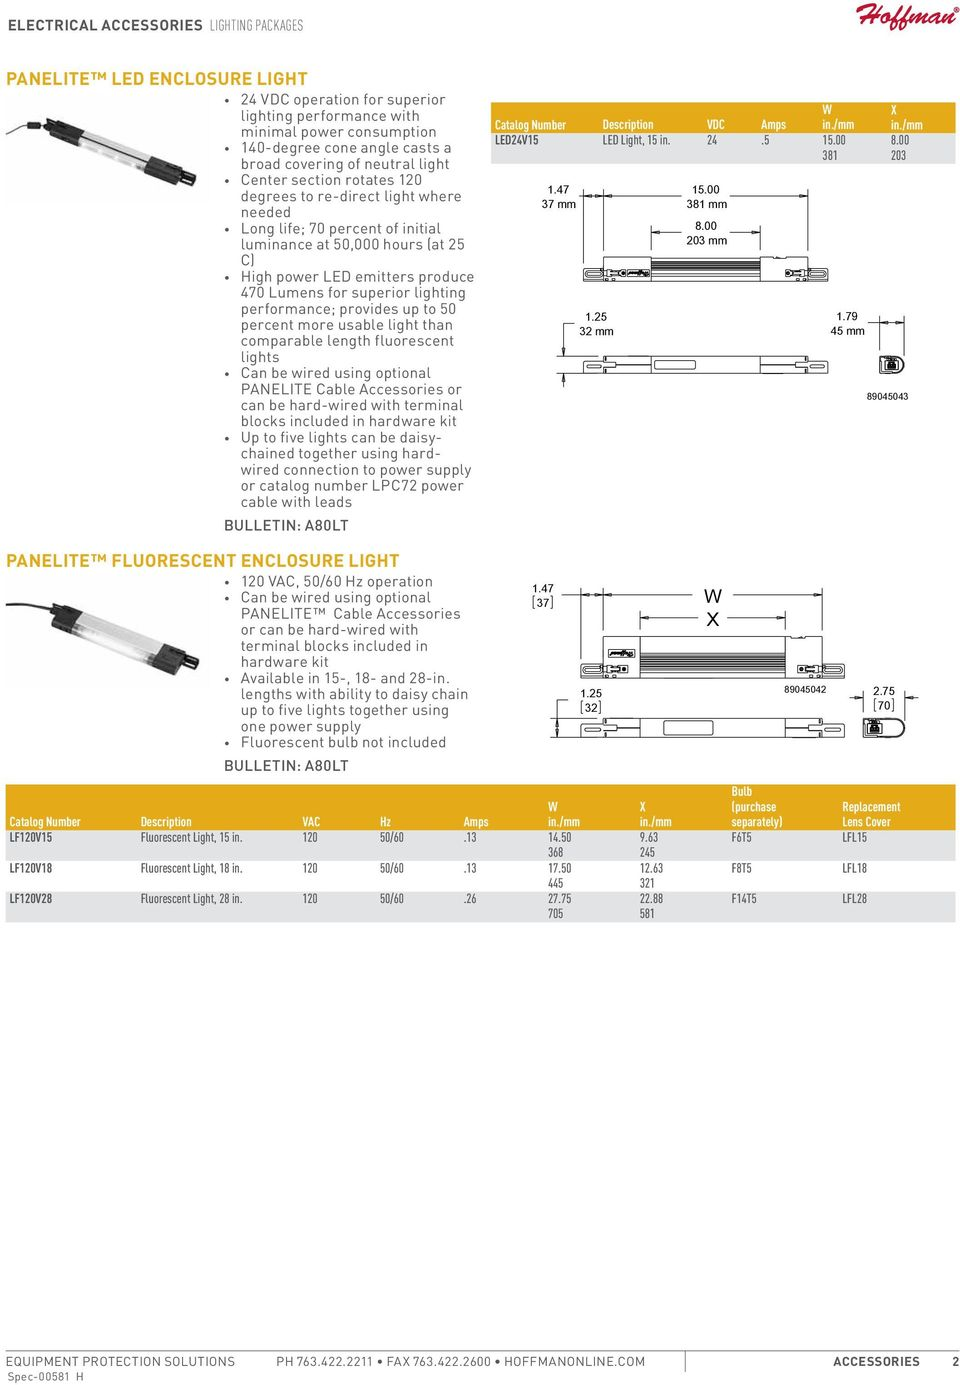 to 50 percent more usable light than comparable length fluorescent lights Can be wired using optional PANELITE Cable or can be hard-wired with terminal blocks included in hardware kit Up to five